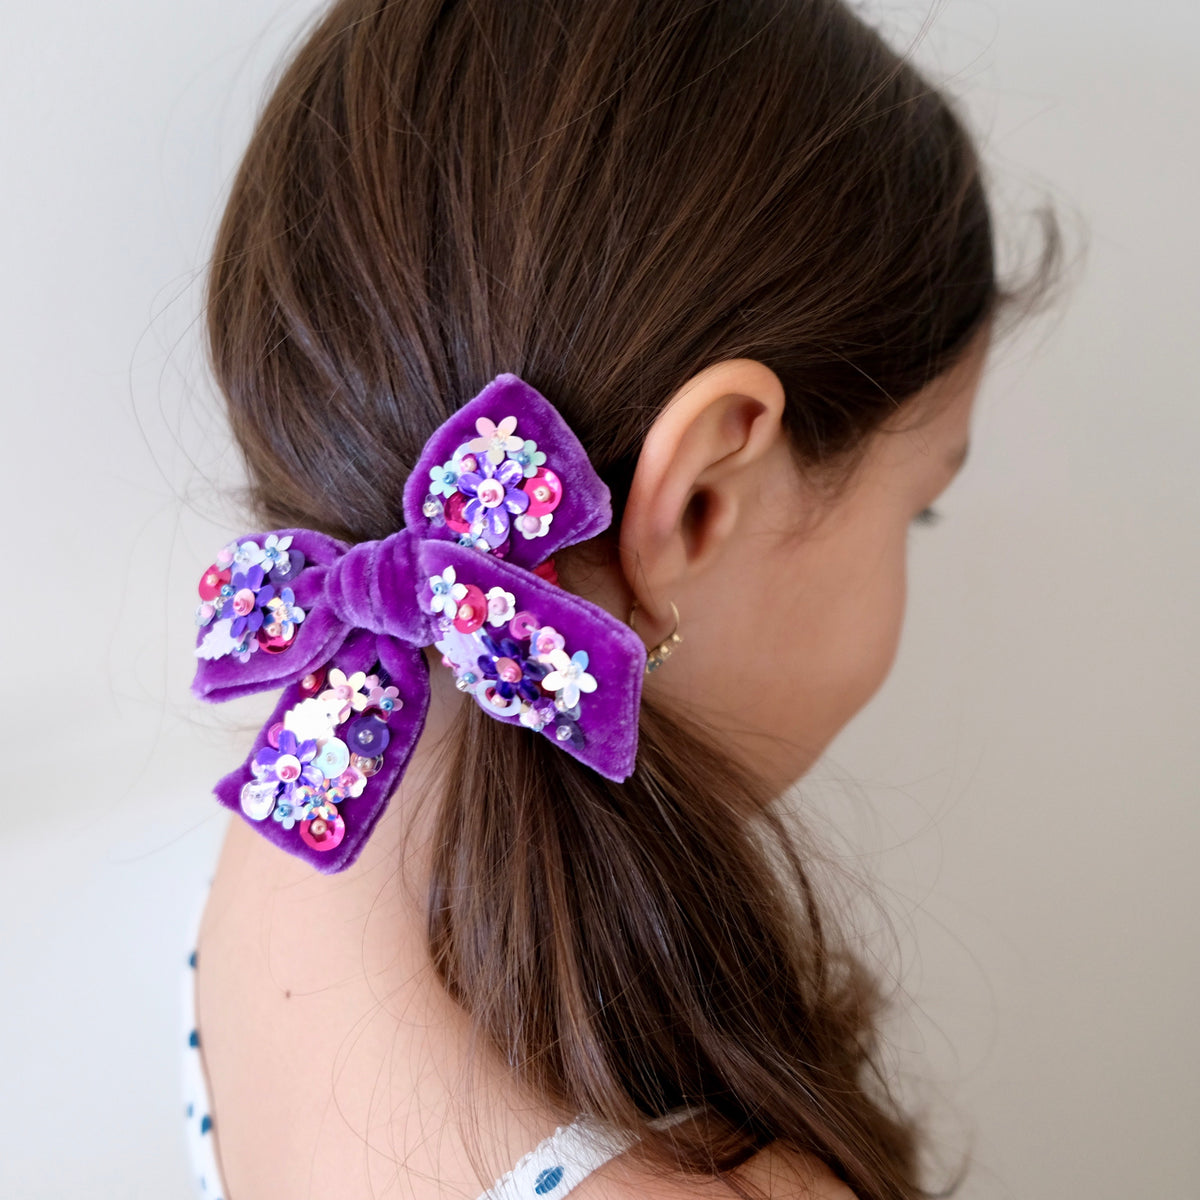 Model with velvet hair bow embellished with sequin in purple.